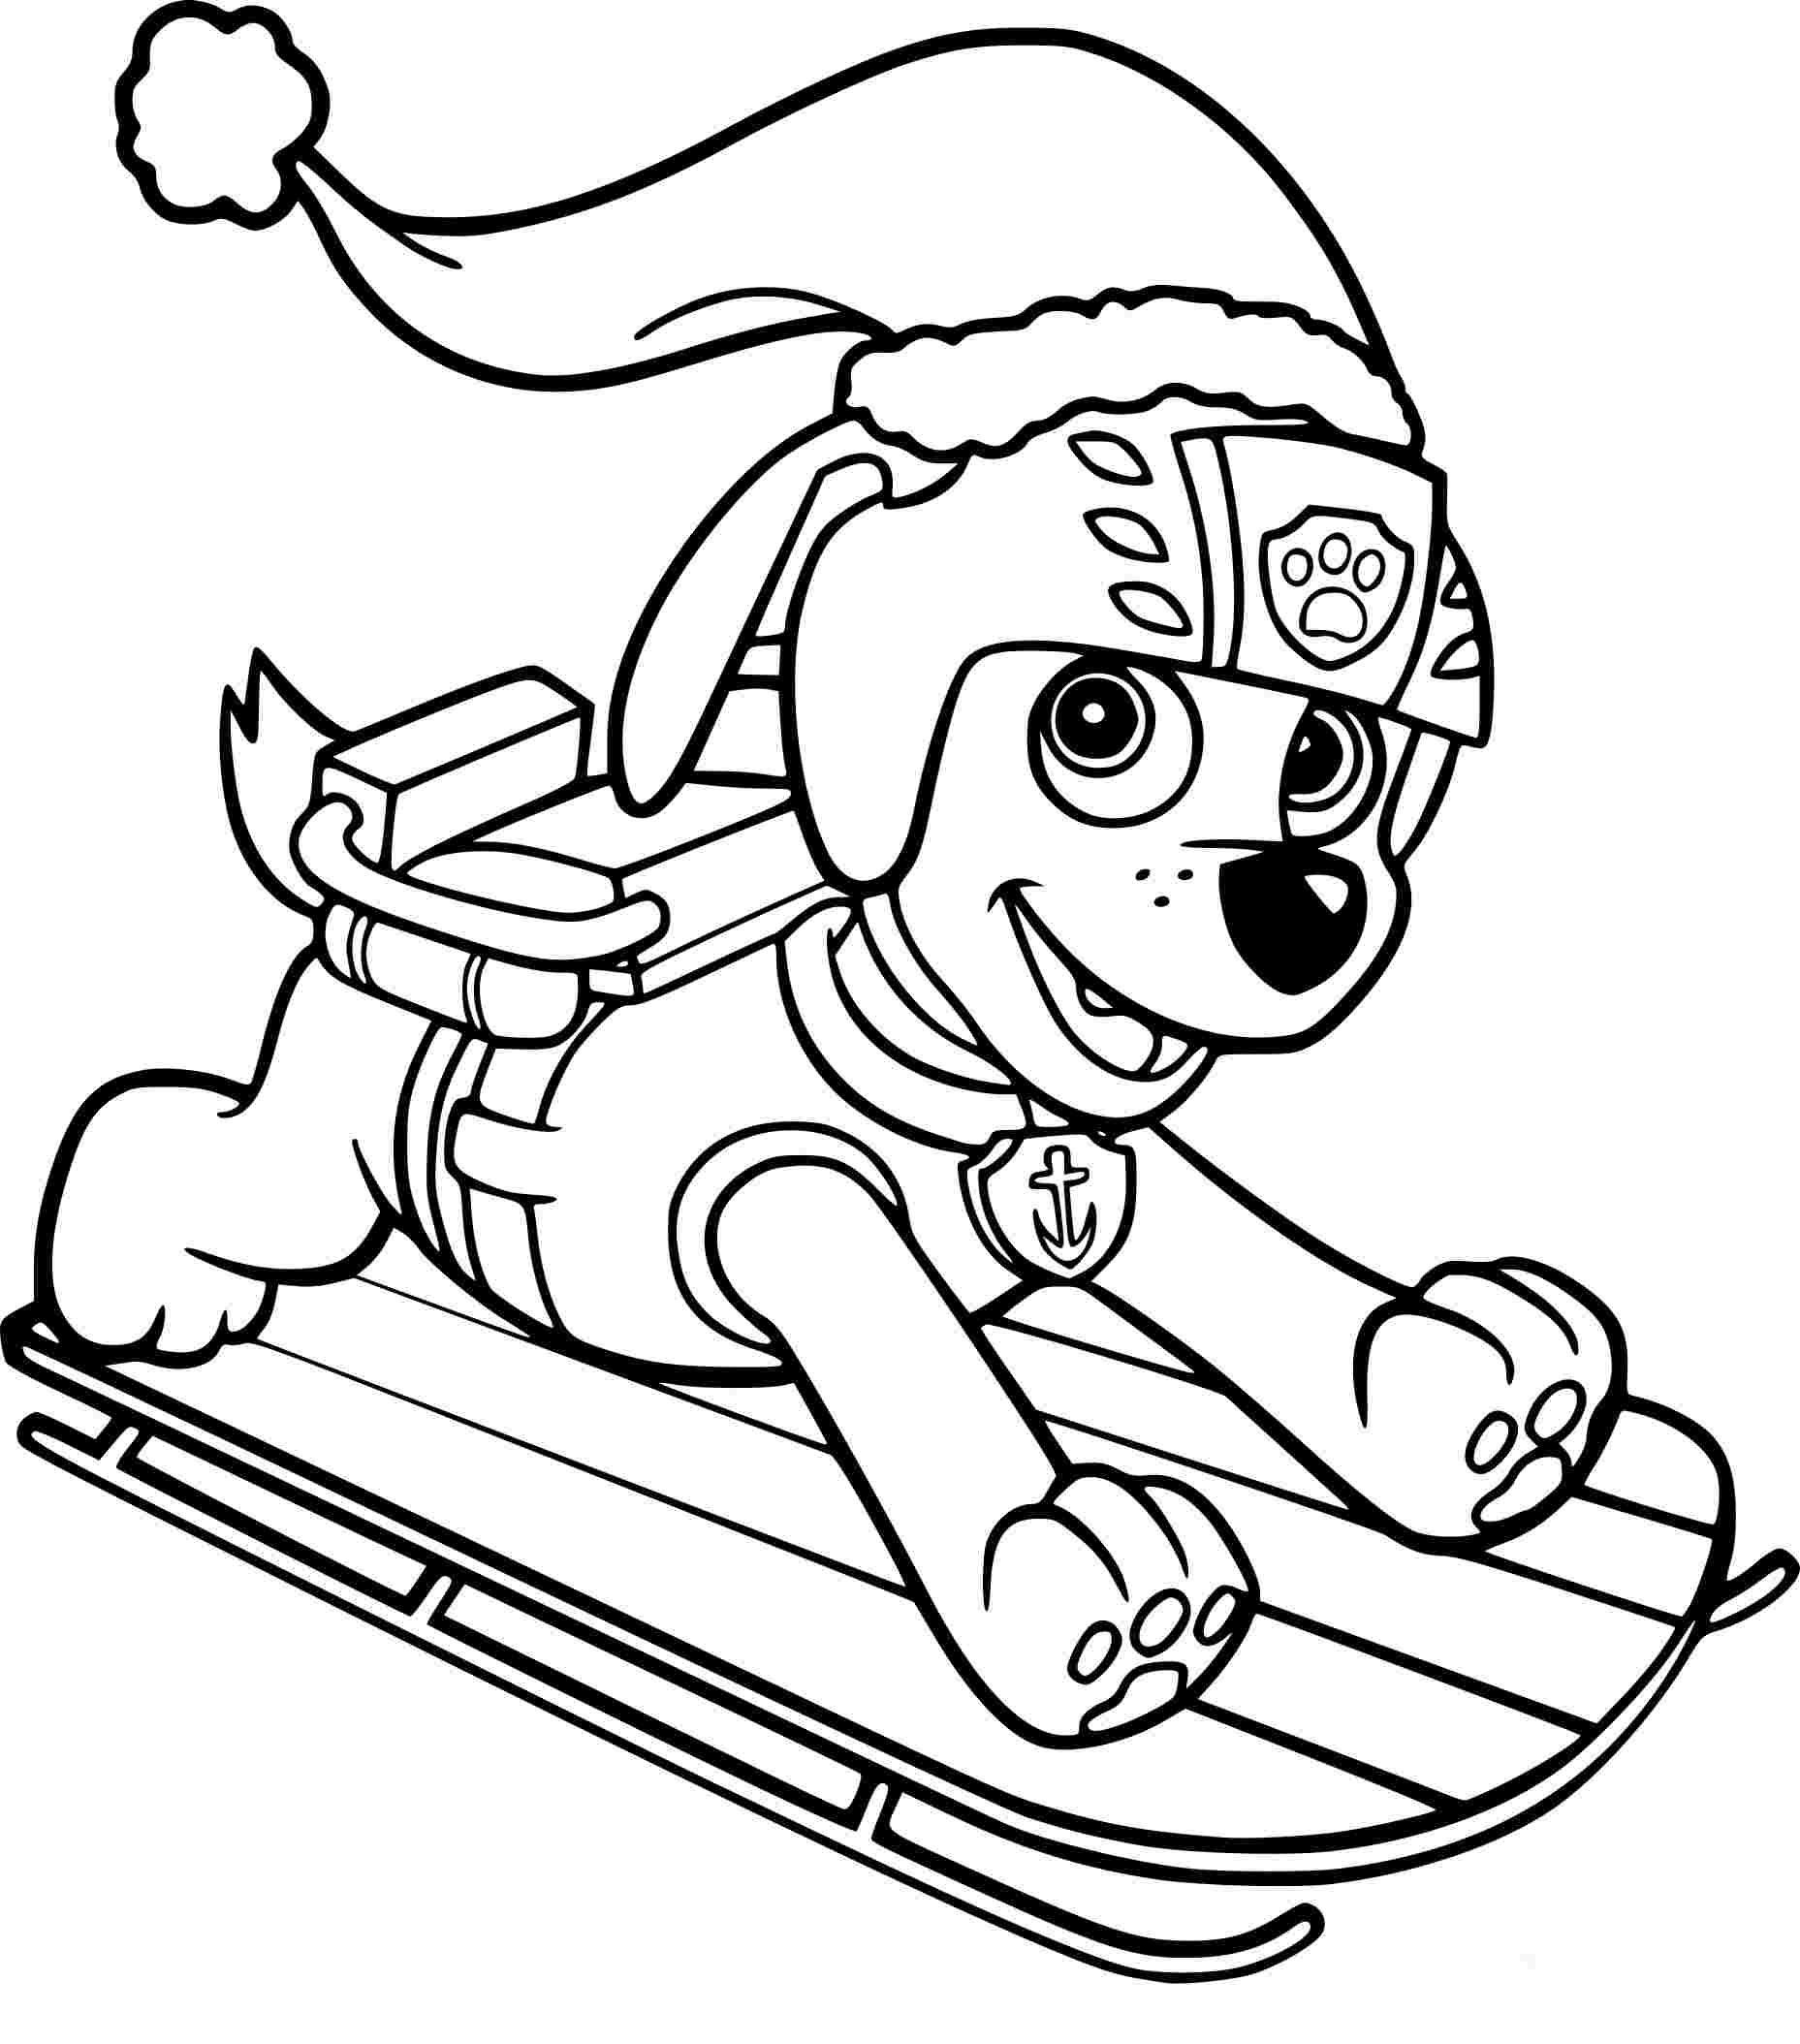 paw patrol jumbo coloring book easy connect the dots printables download or print skye paw patrol book jumbo coloring